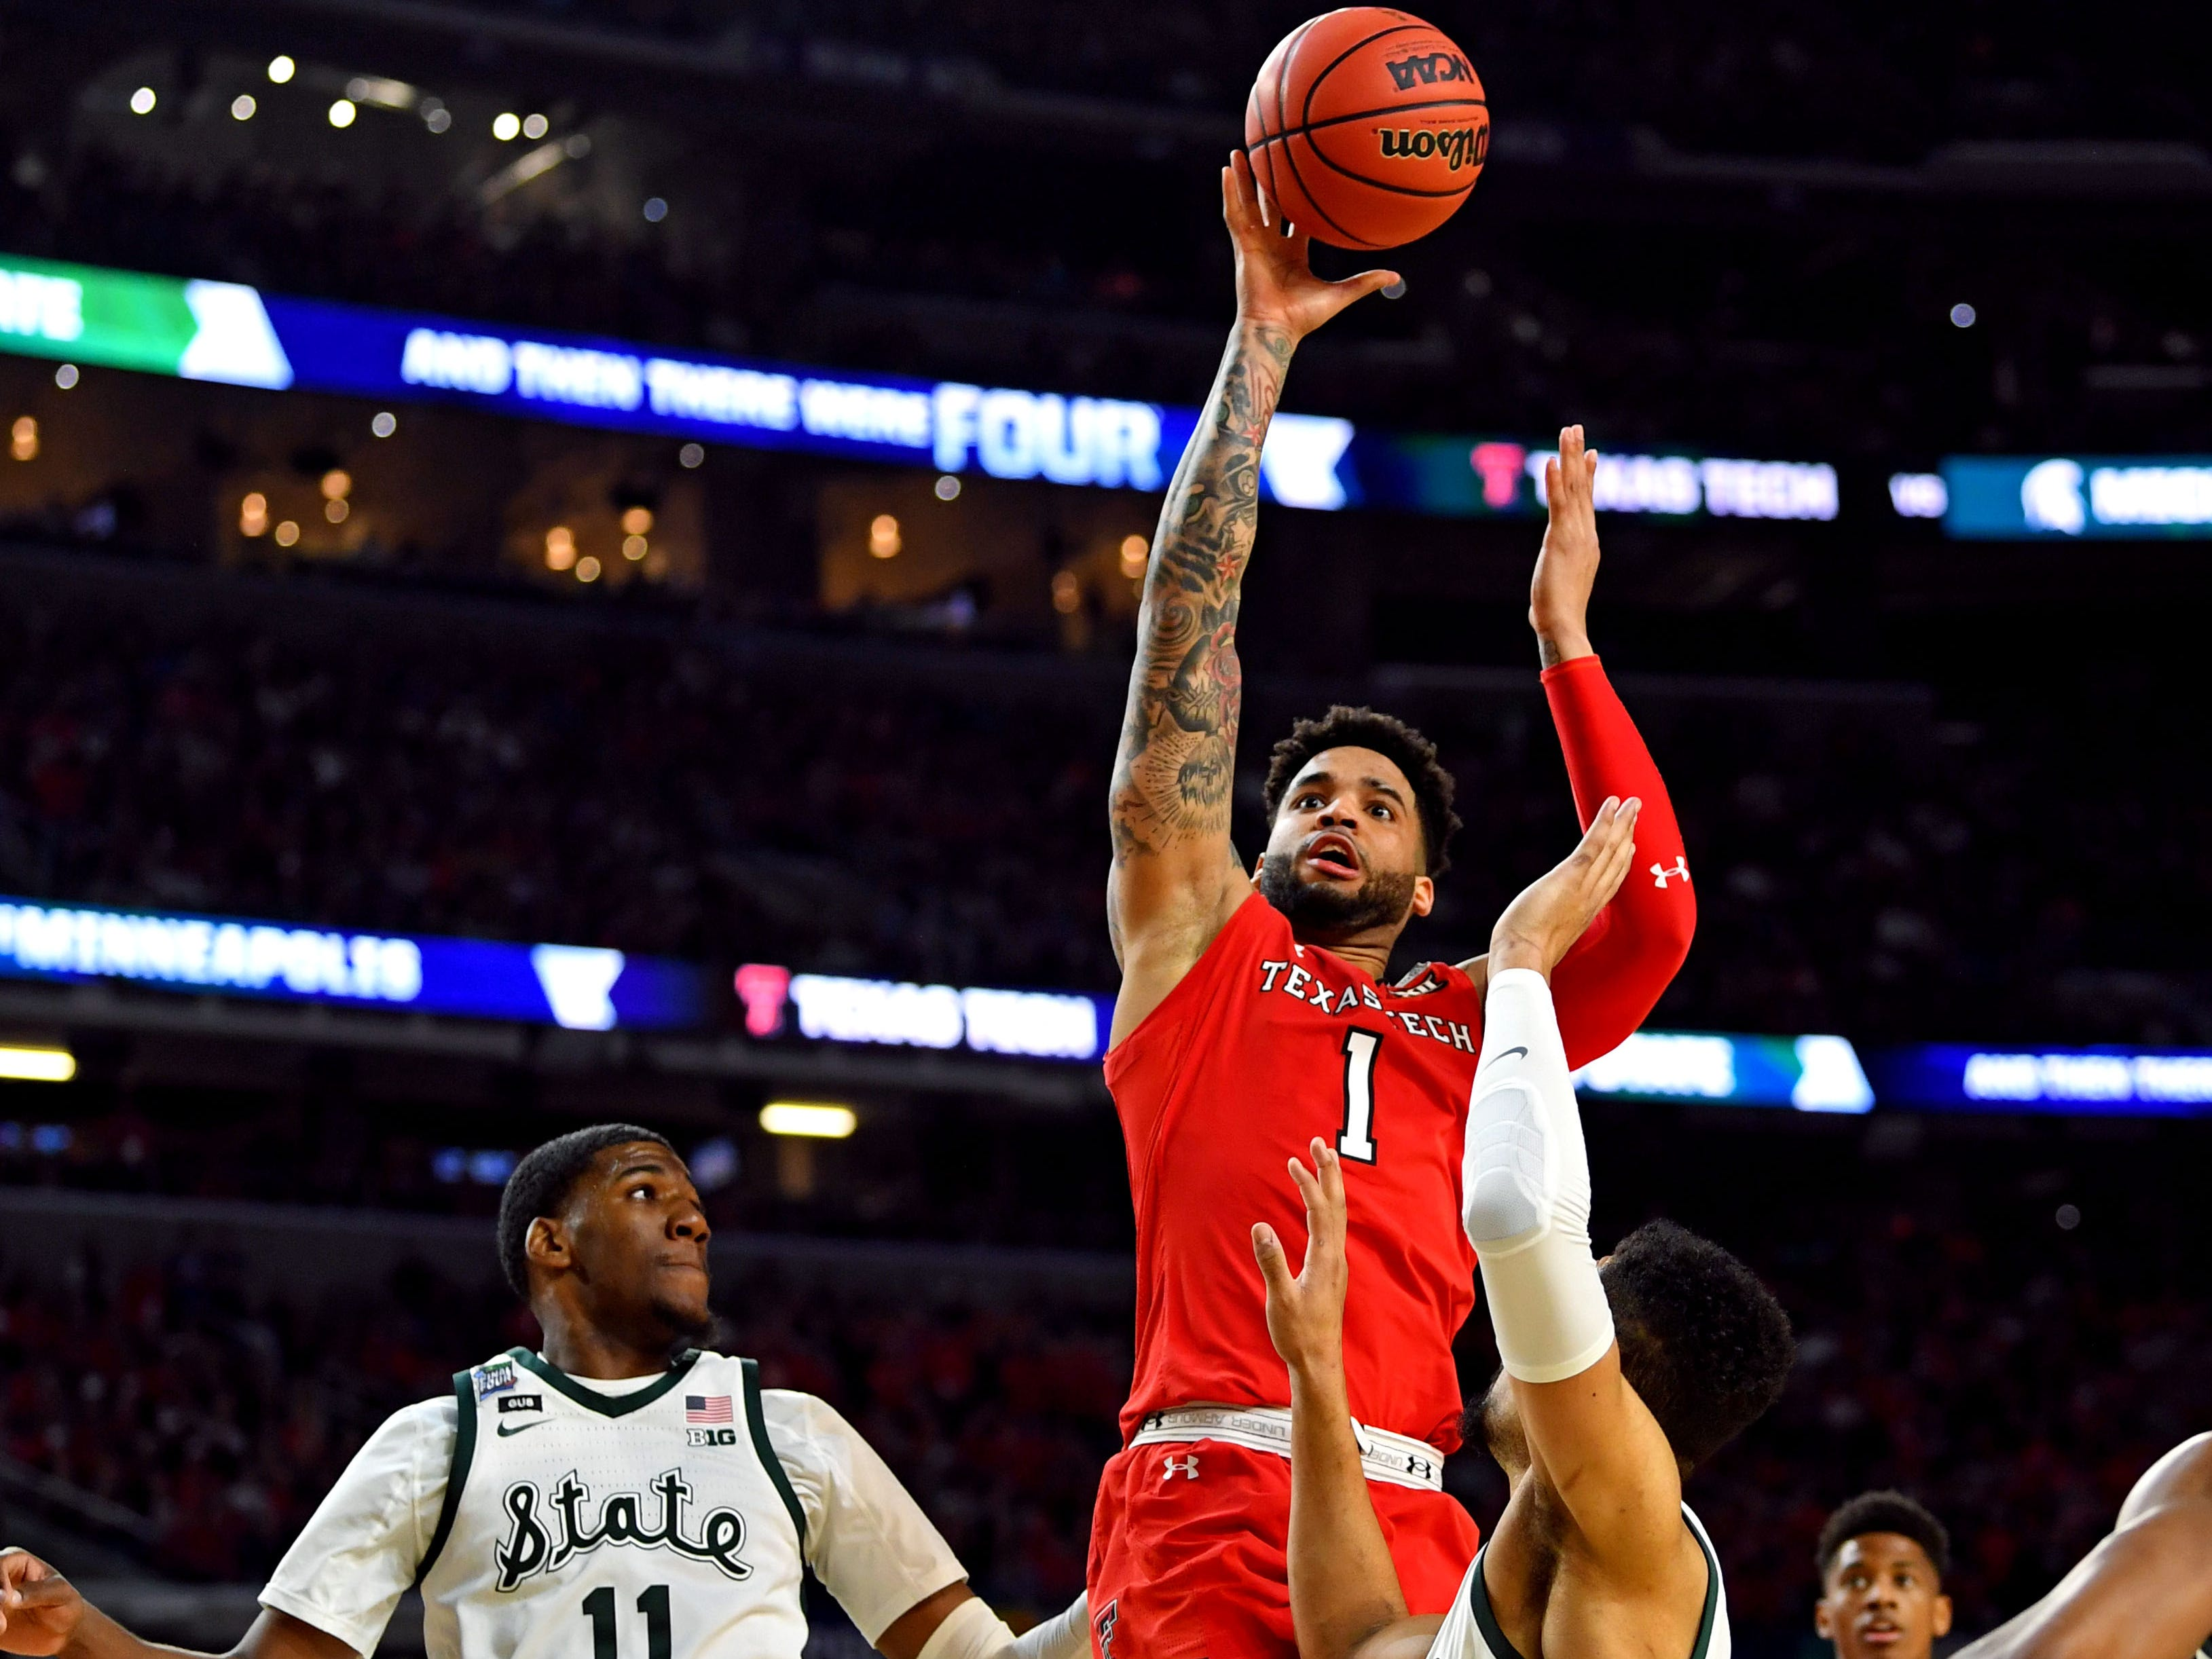 Apr 6, 2019; Minneapolis, MN, USA; Texas Tech Red Raiders guard Brandone Francis (1) shoots the ball against Michigan State Spartans forward Aaron Henry (11) during the first half in the semifinals of the 2019 men's Final Four at US Bank Stadium. Mandatory Credit: Bob Donnan-USA TODAY Sports